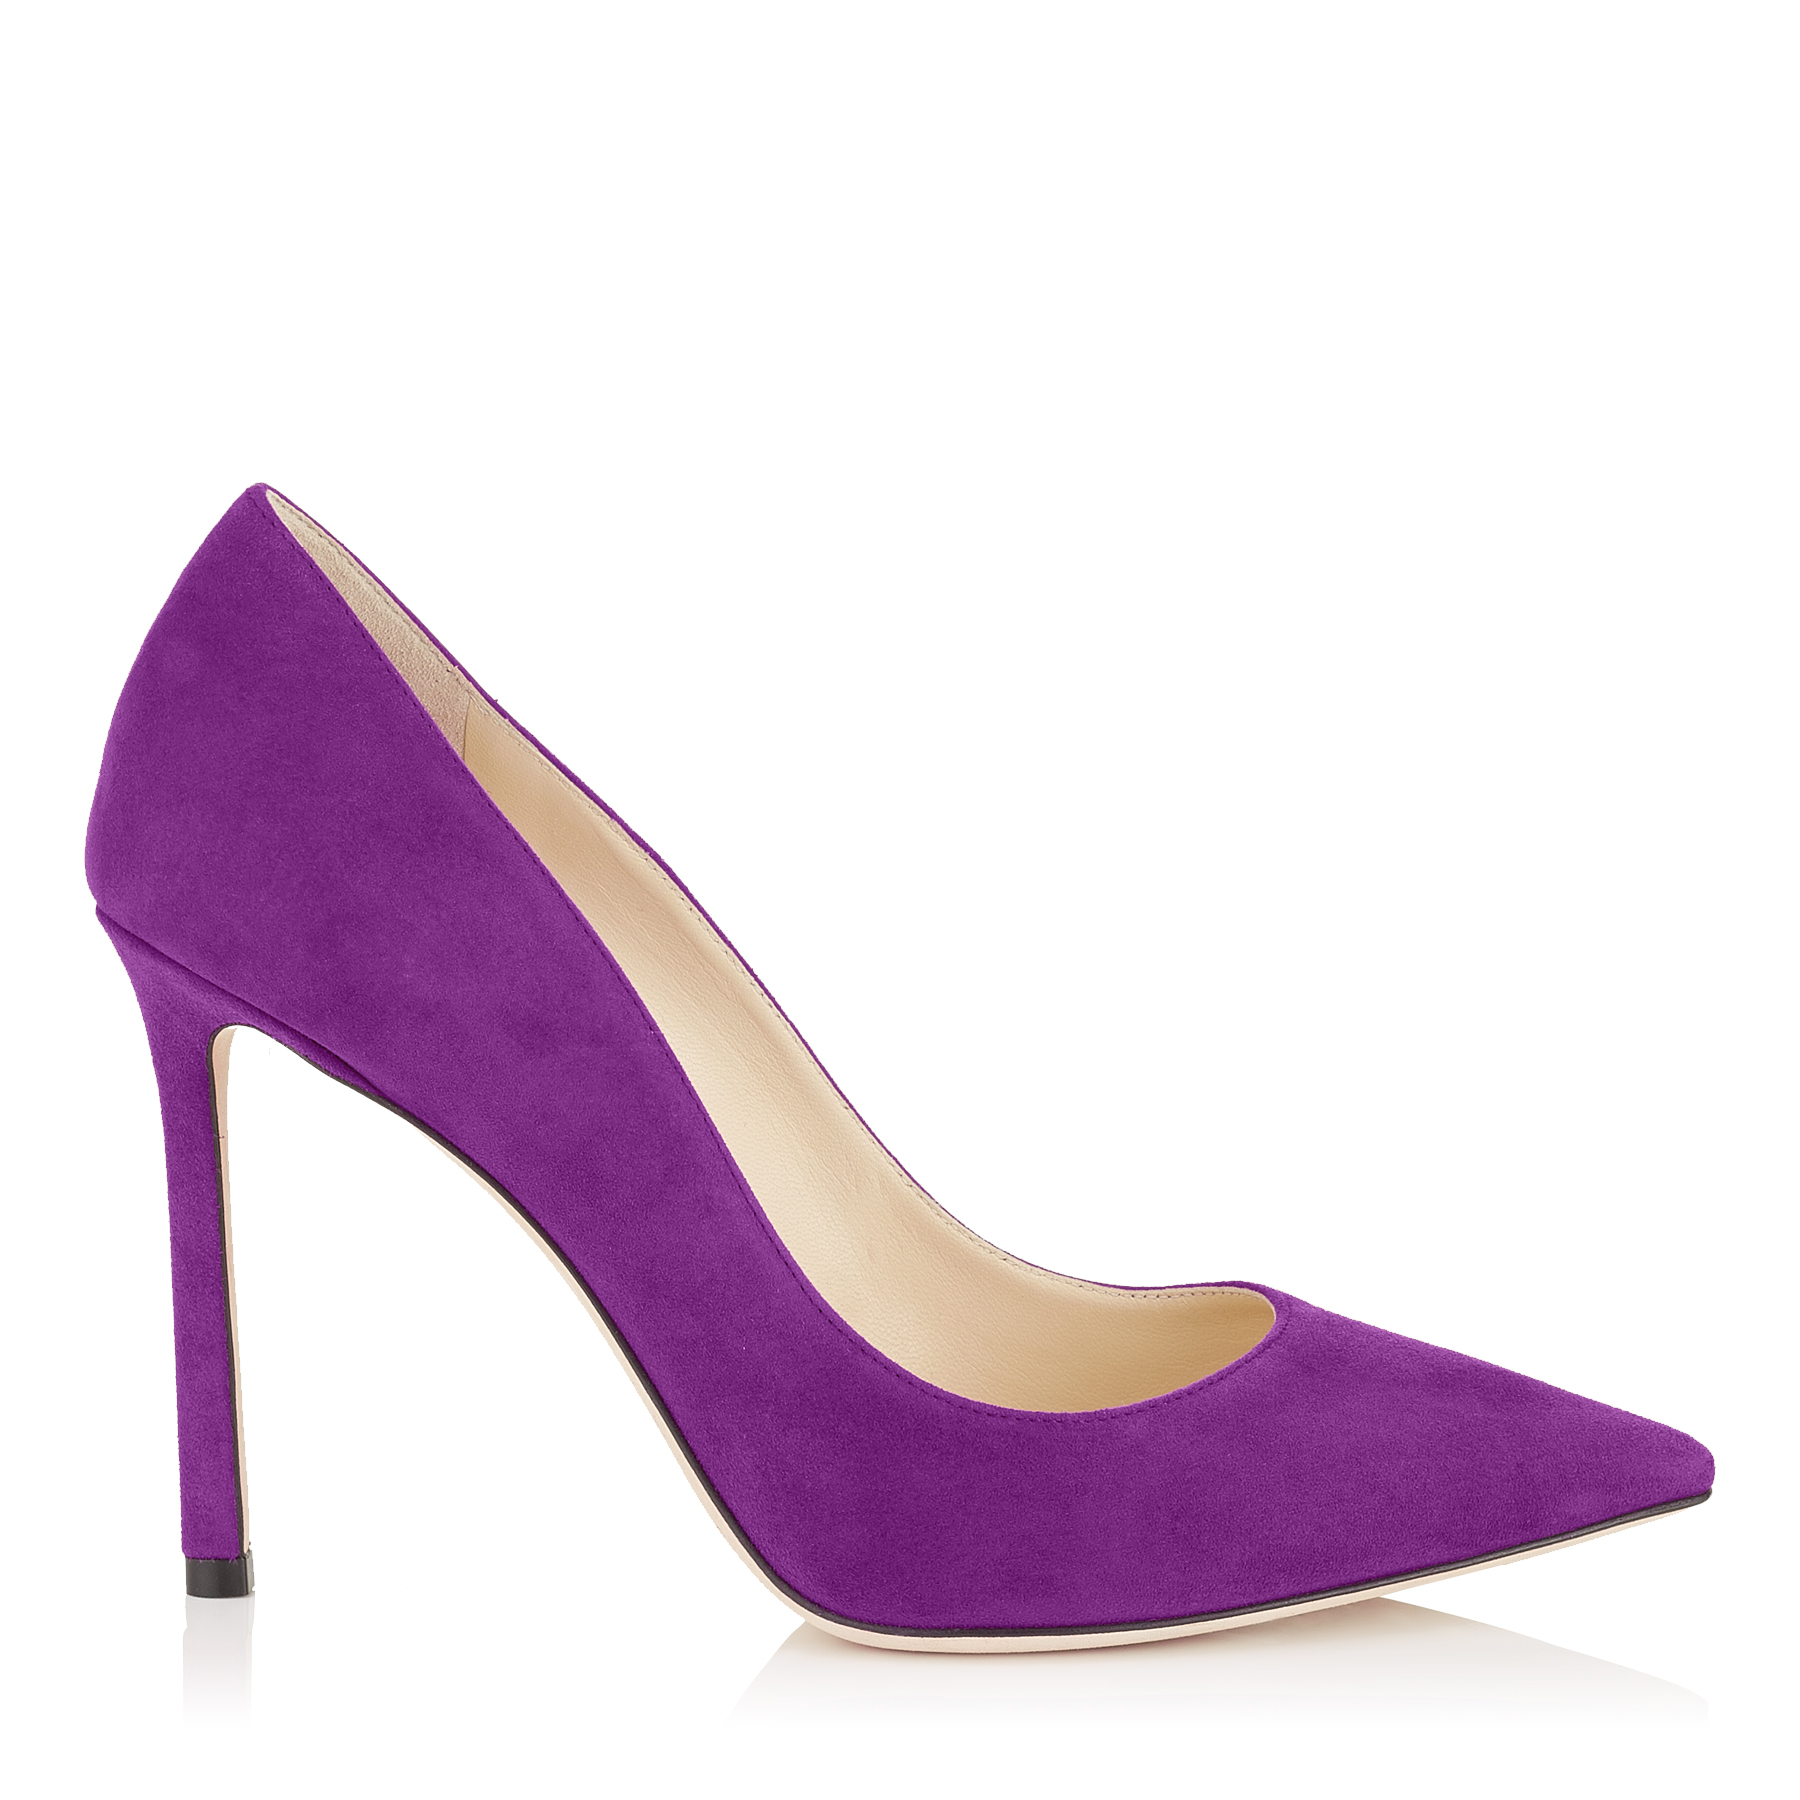 ROMY 100 Madeline Suede Pointy Toe Pumps